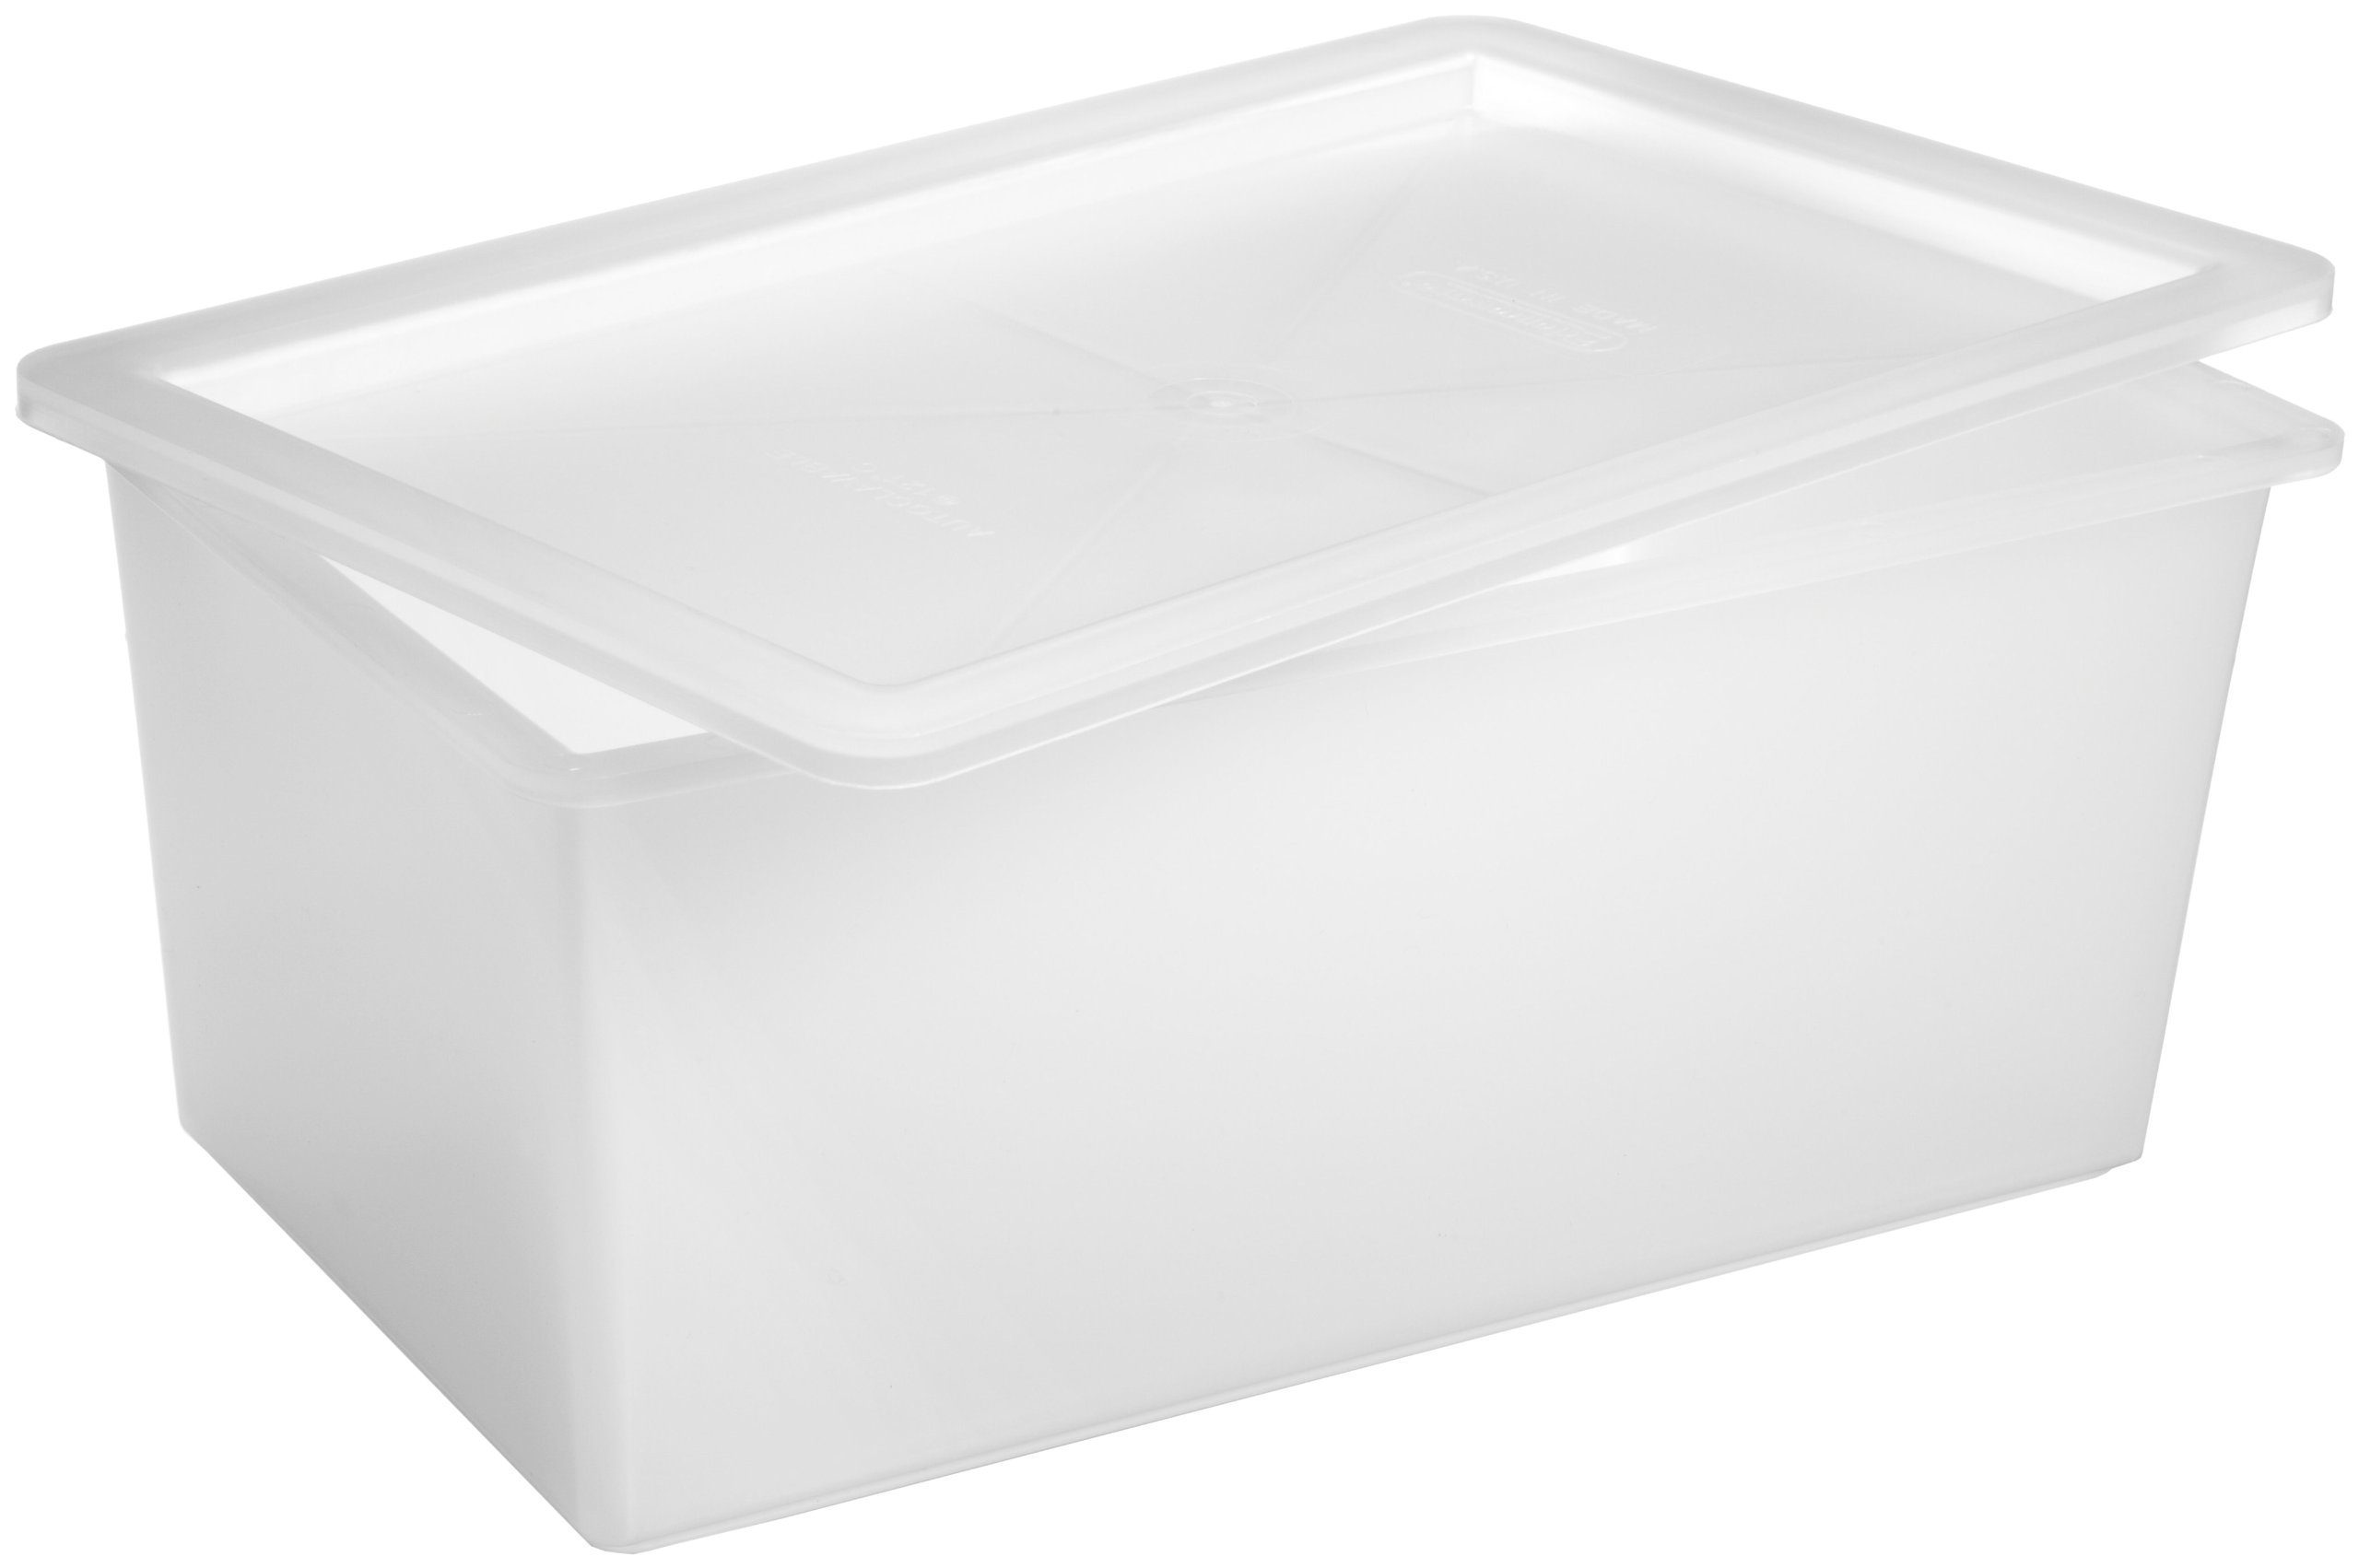 Bel-Art Polypropylene Instrument Tray with Cover; 11 x 6 x 5 in. (F16191-0000)